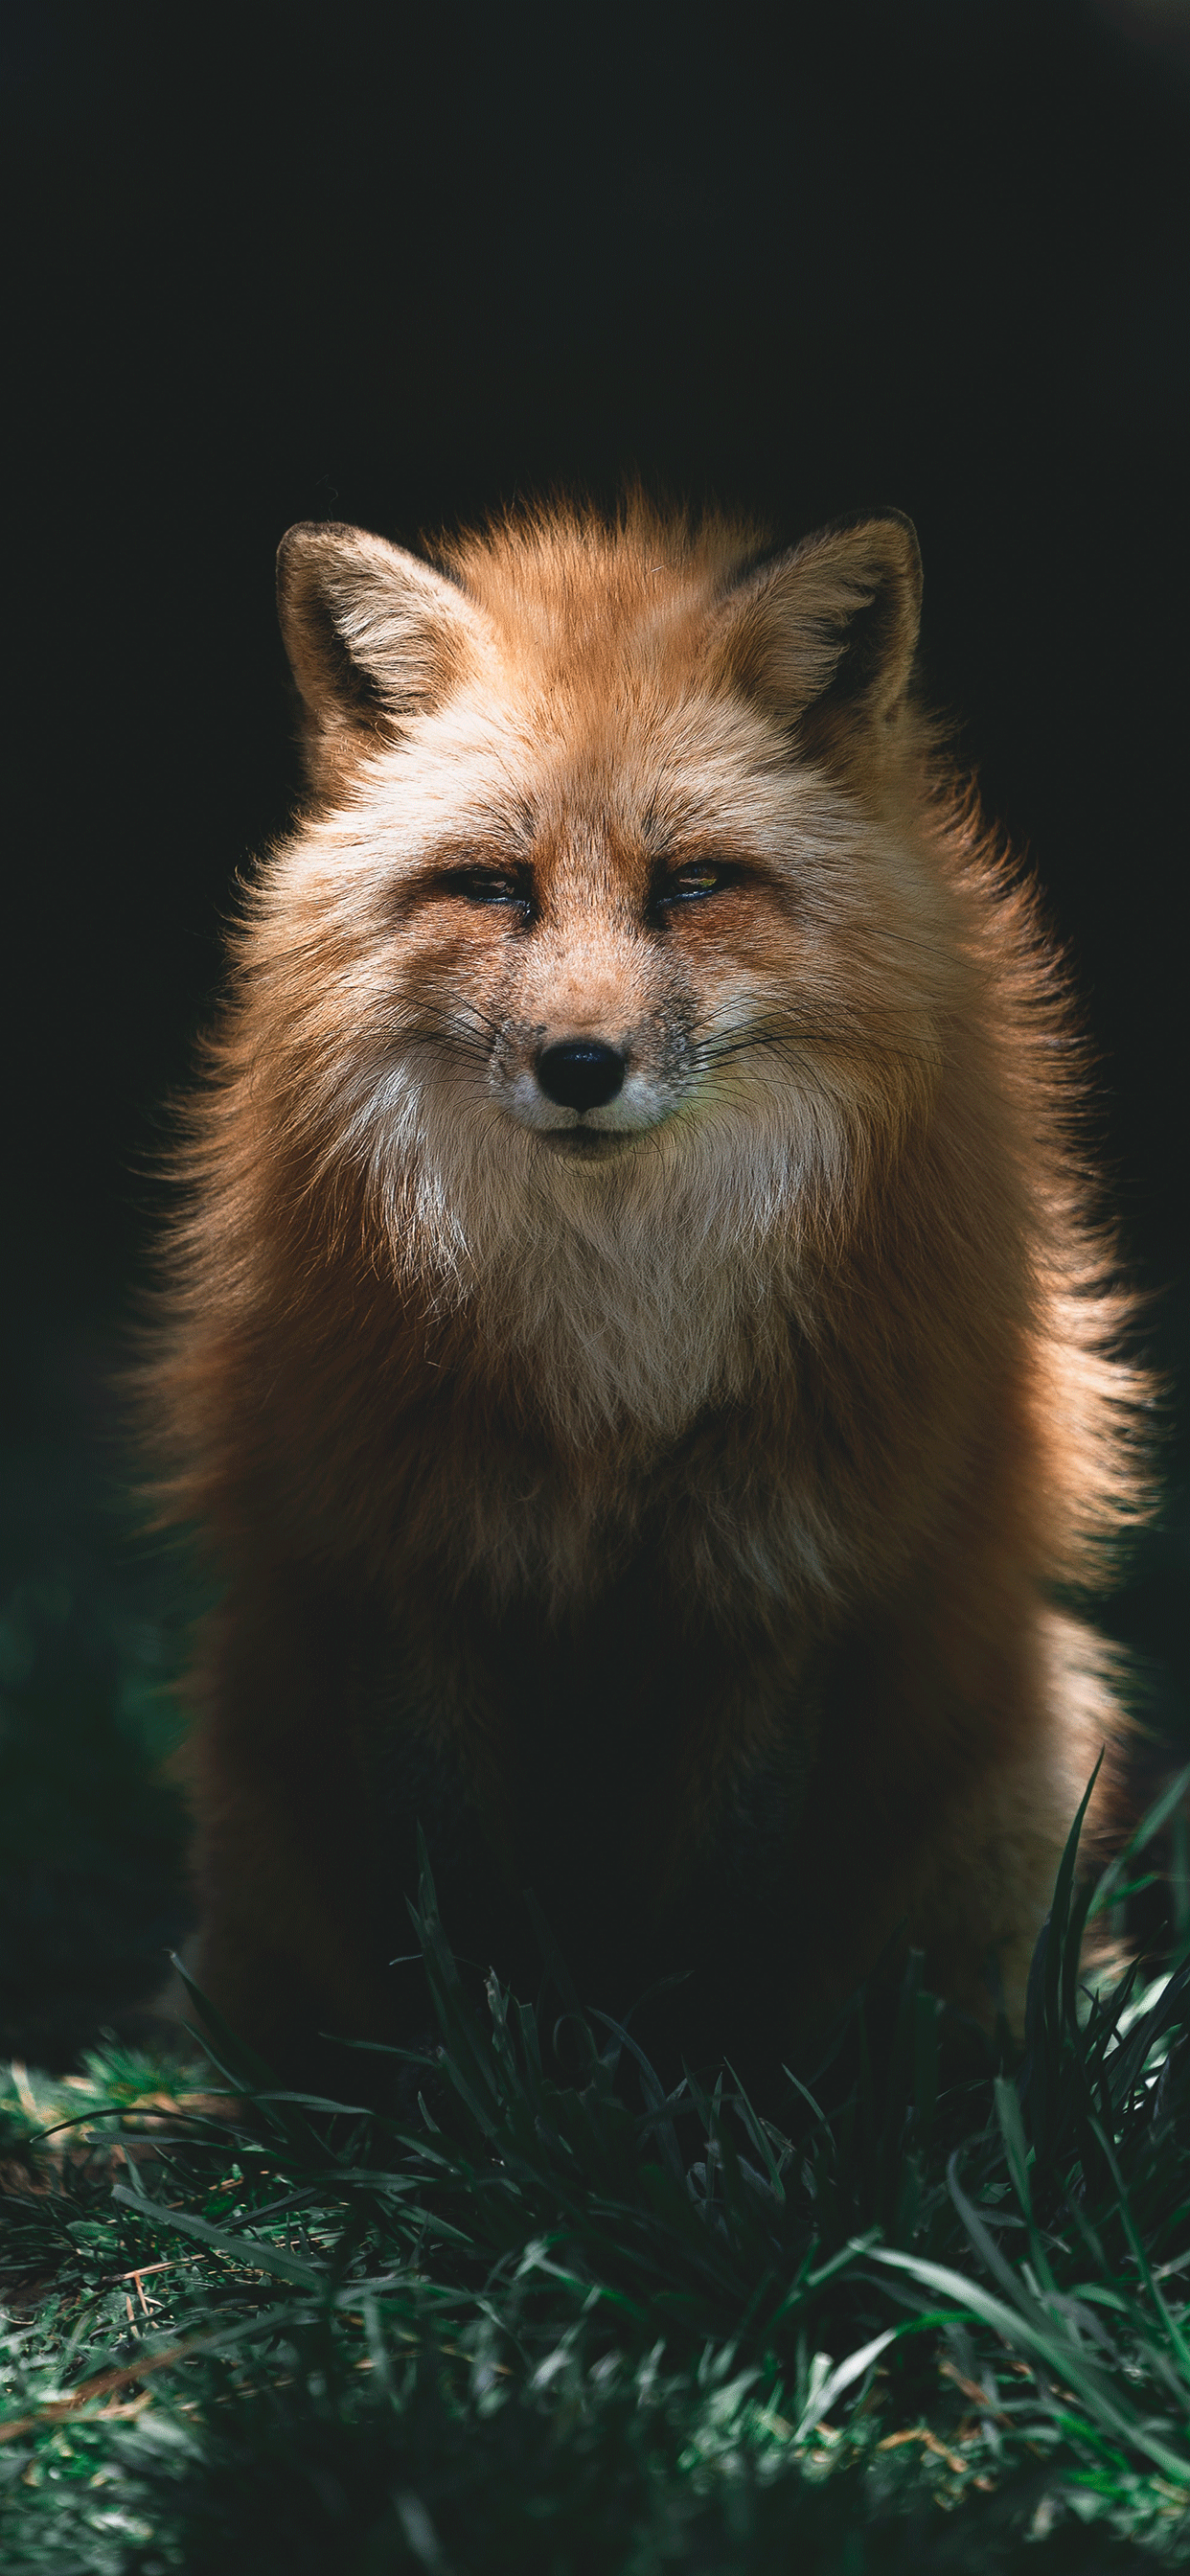 iPhone wallpapers fox eyes closed Fonds d'écran iPhone du 28/06/2019